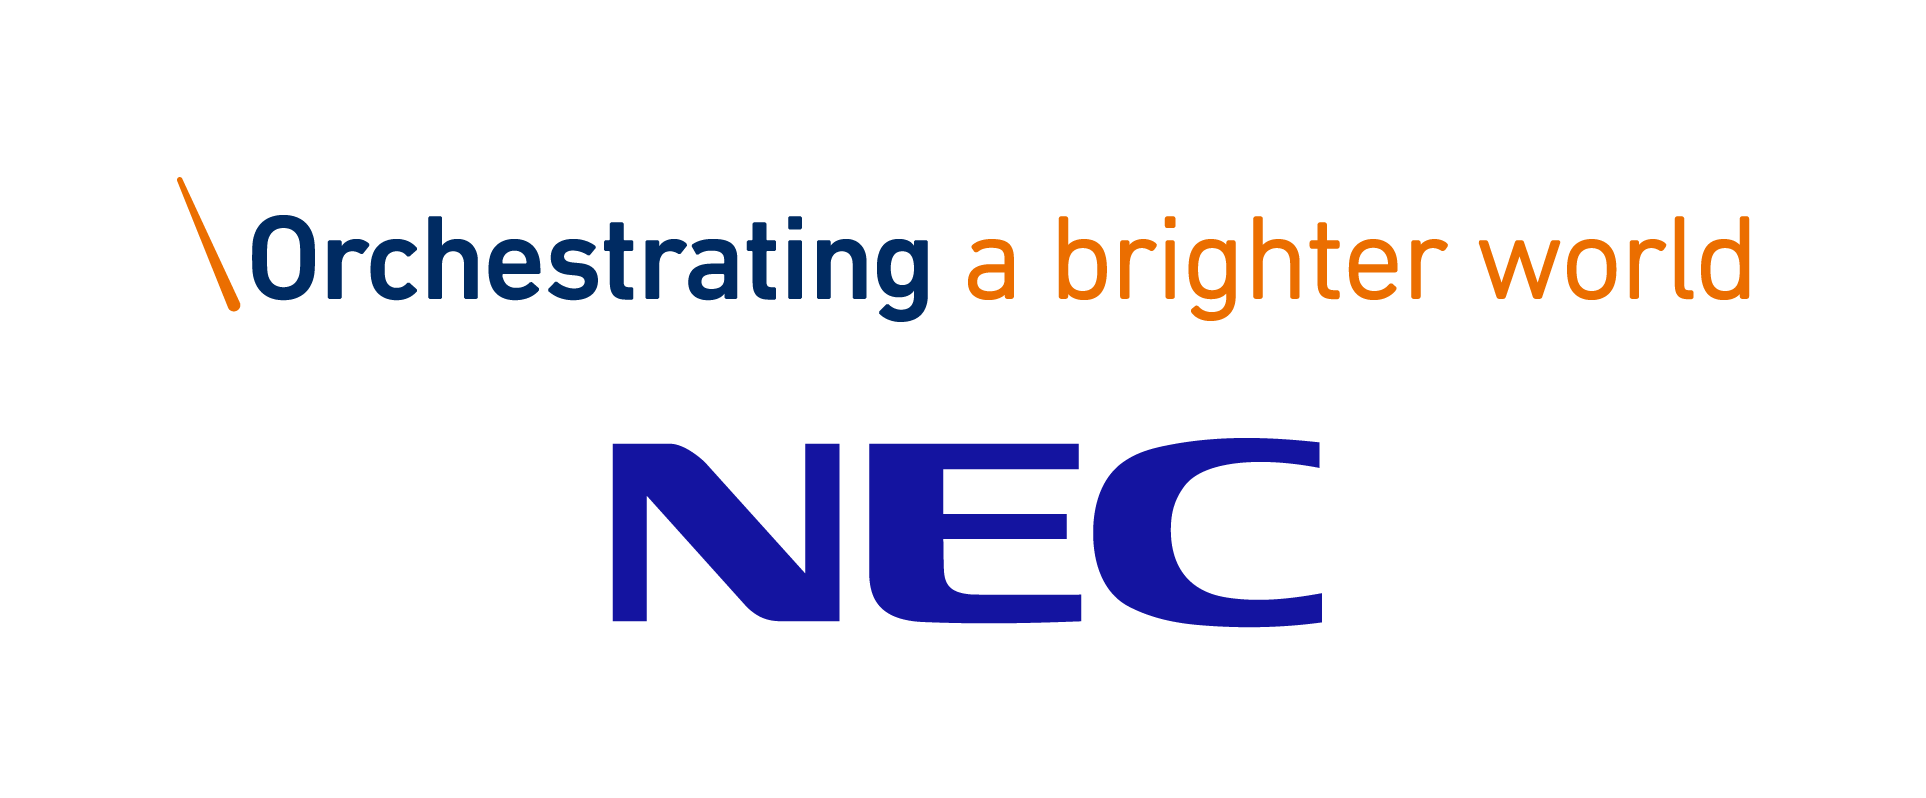 Nec Is A Leading Provider Of Hpc Solutions Focusing On Sustained Performance For Real Life Scientific And Engineering Applications